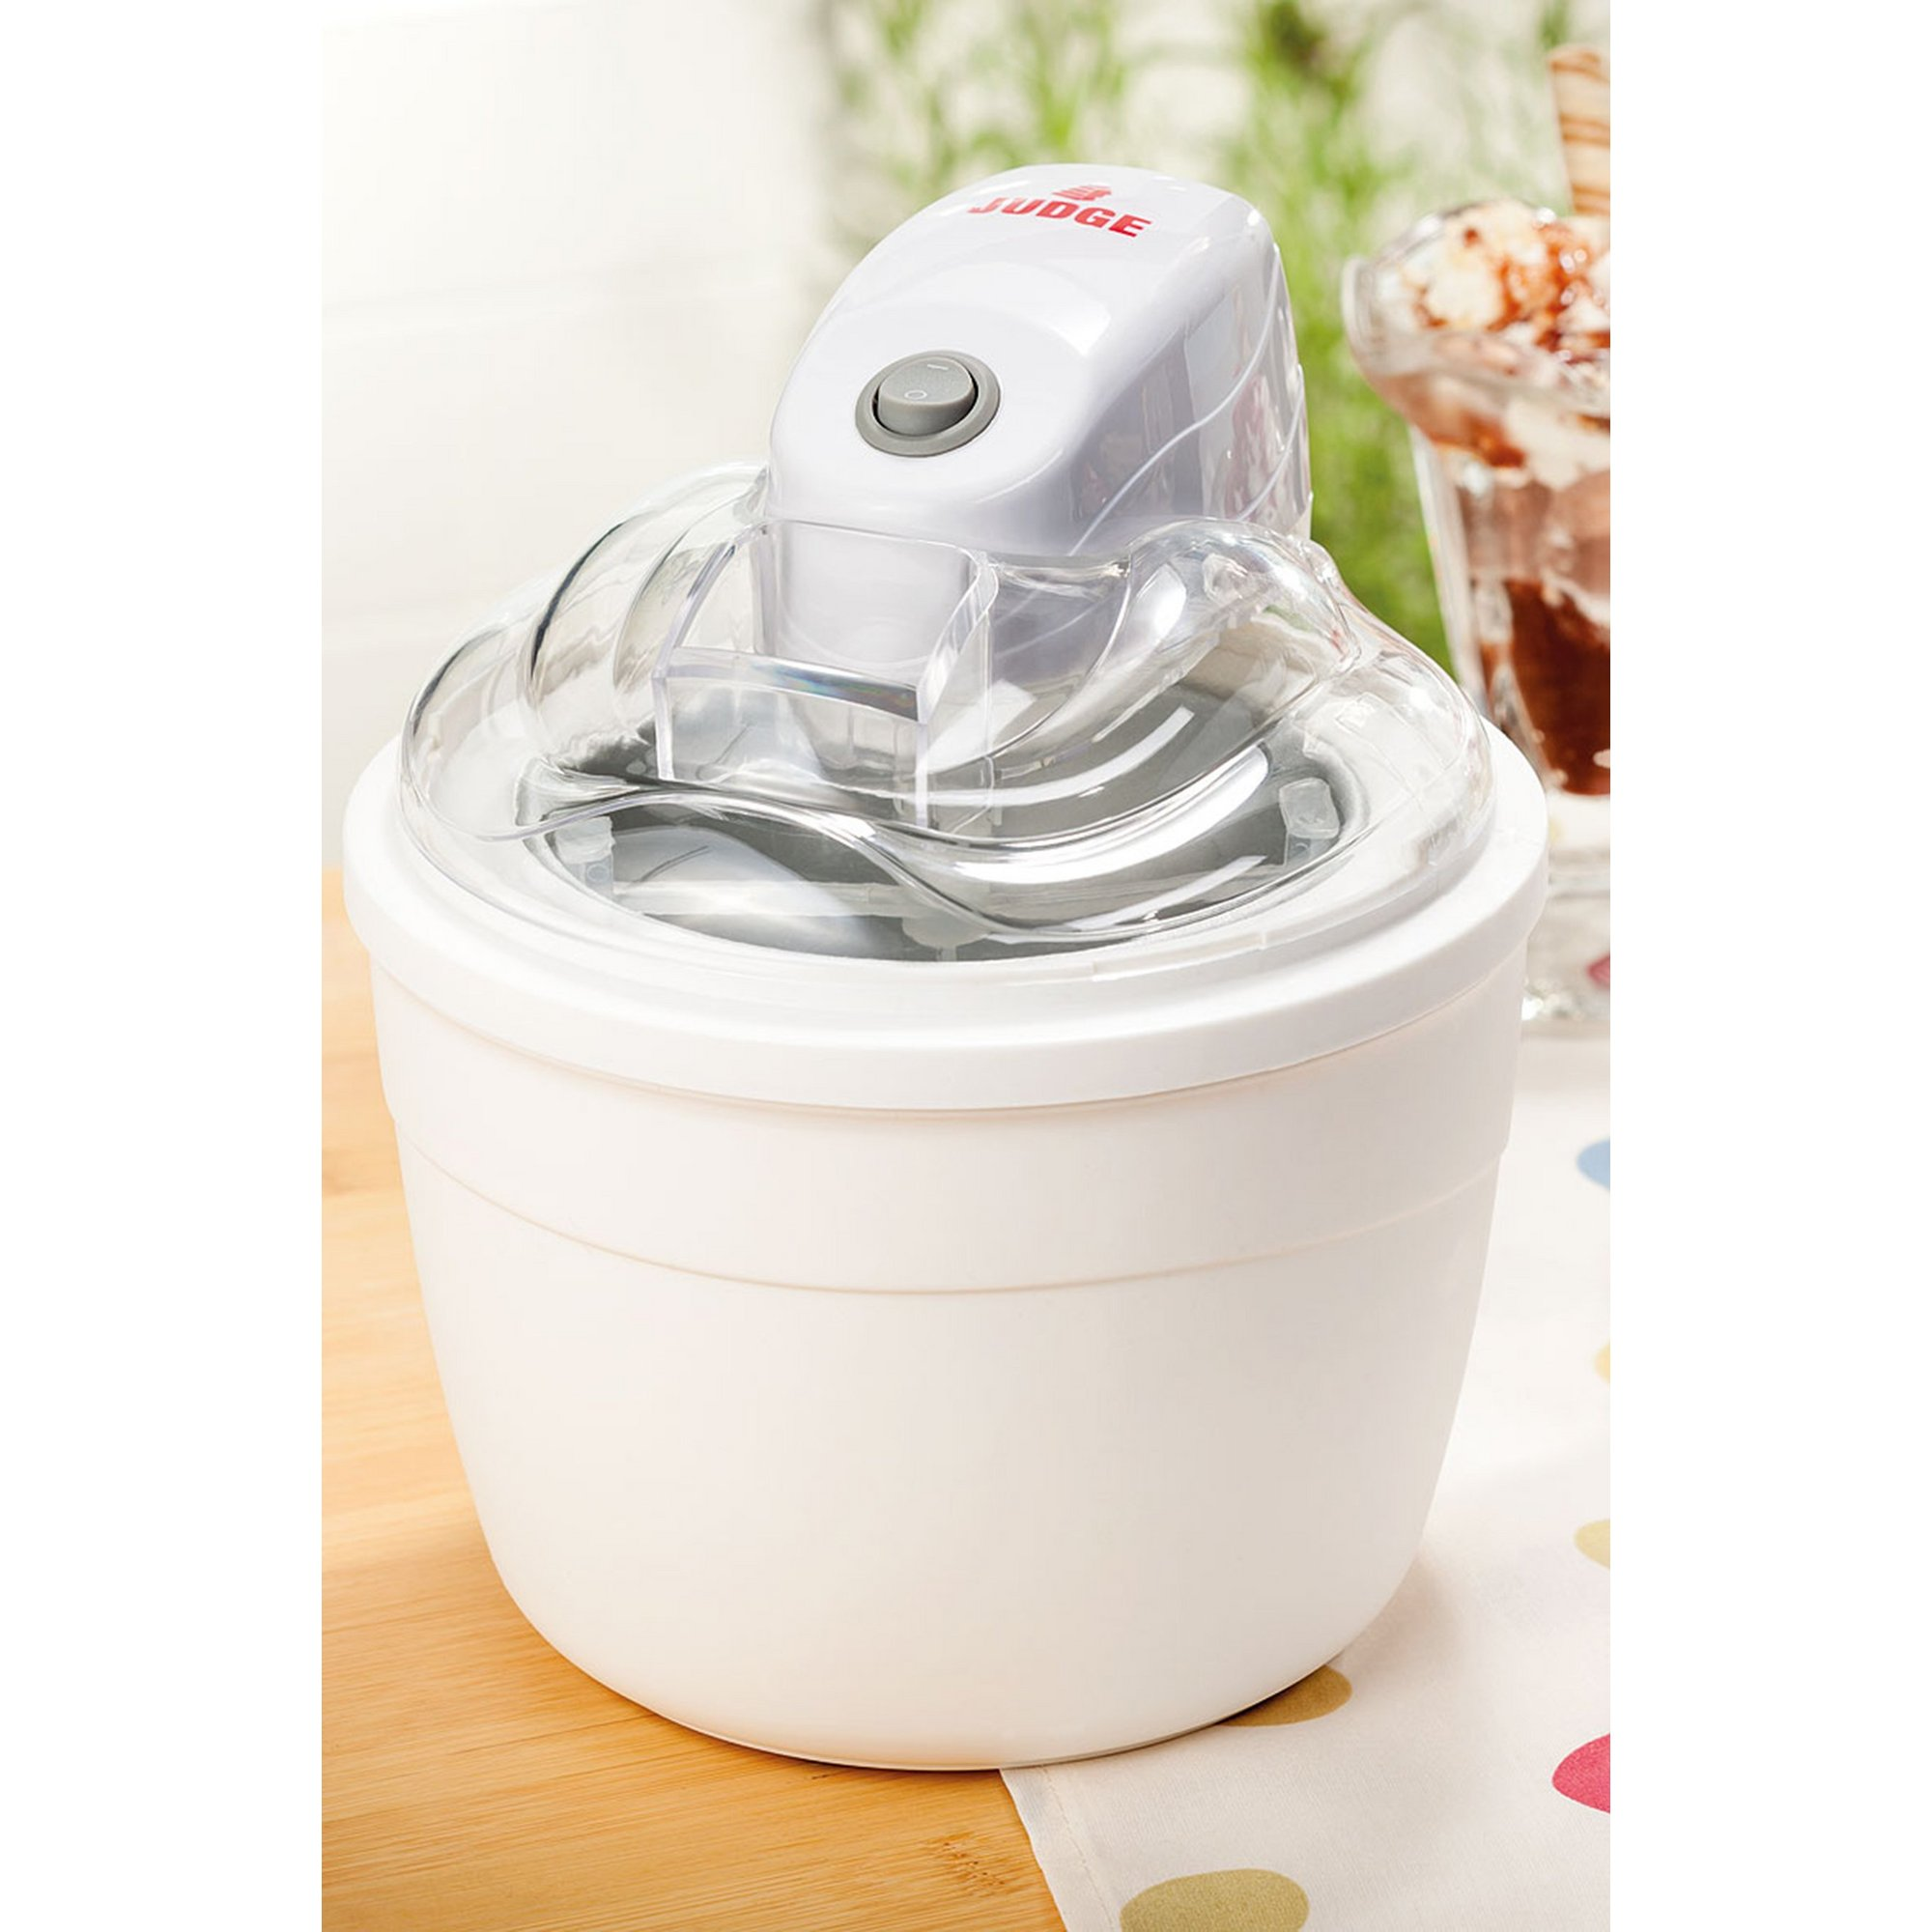 Image of Judge 1.5L Ice Cream Maker